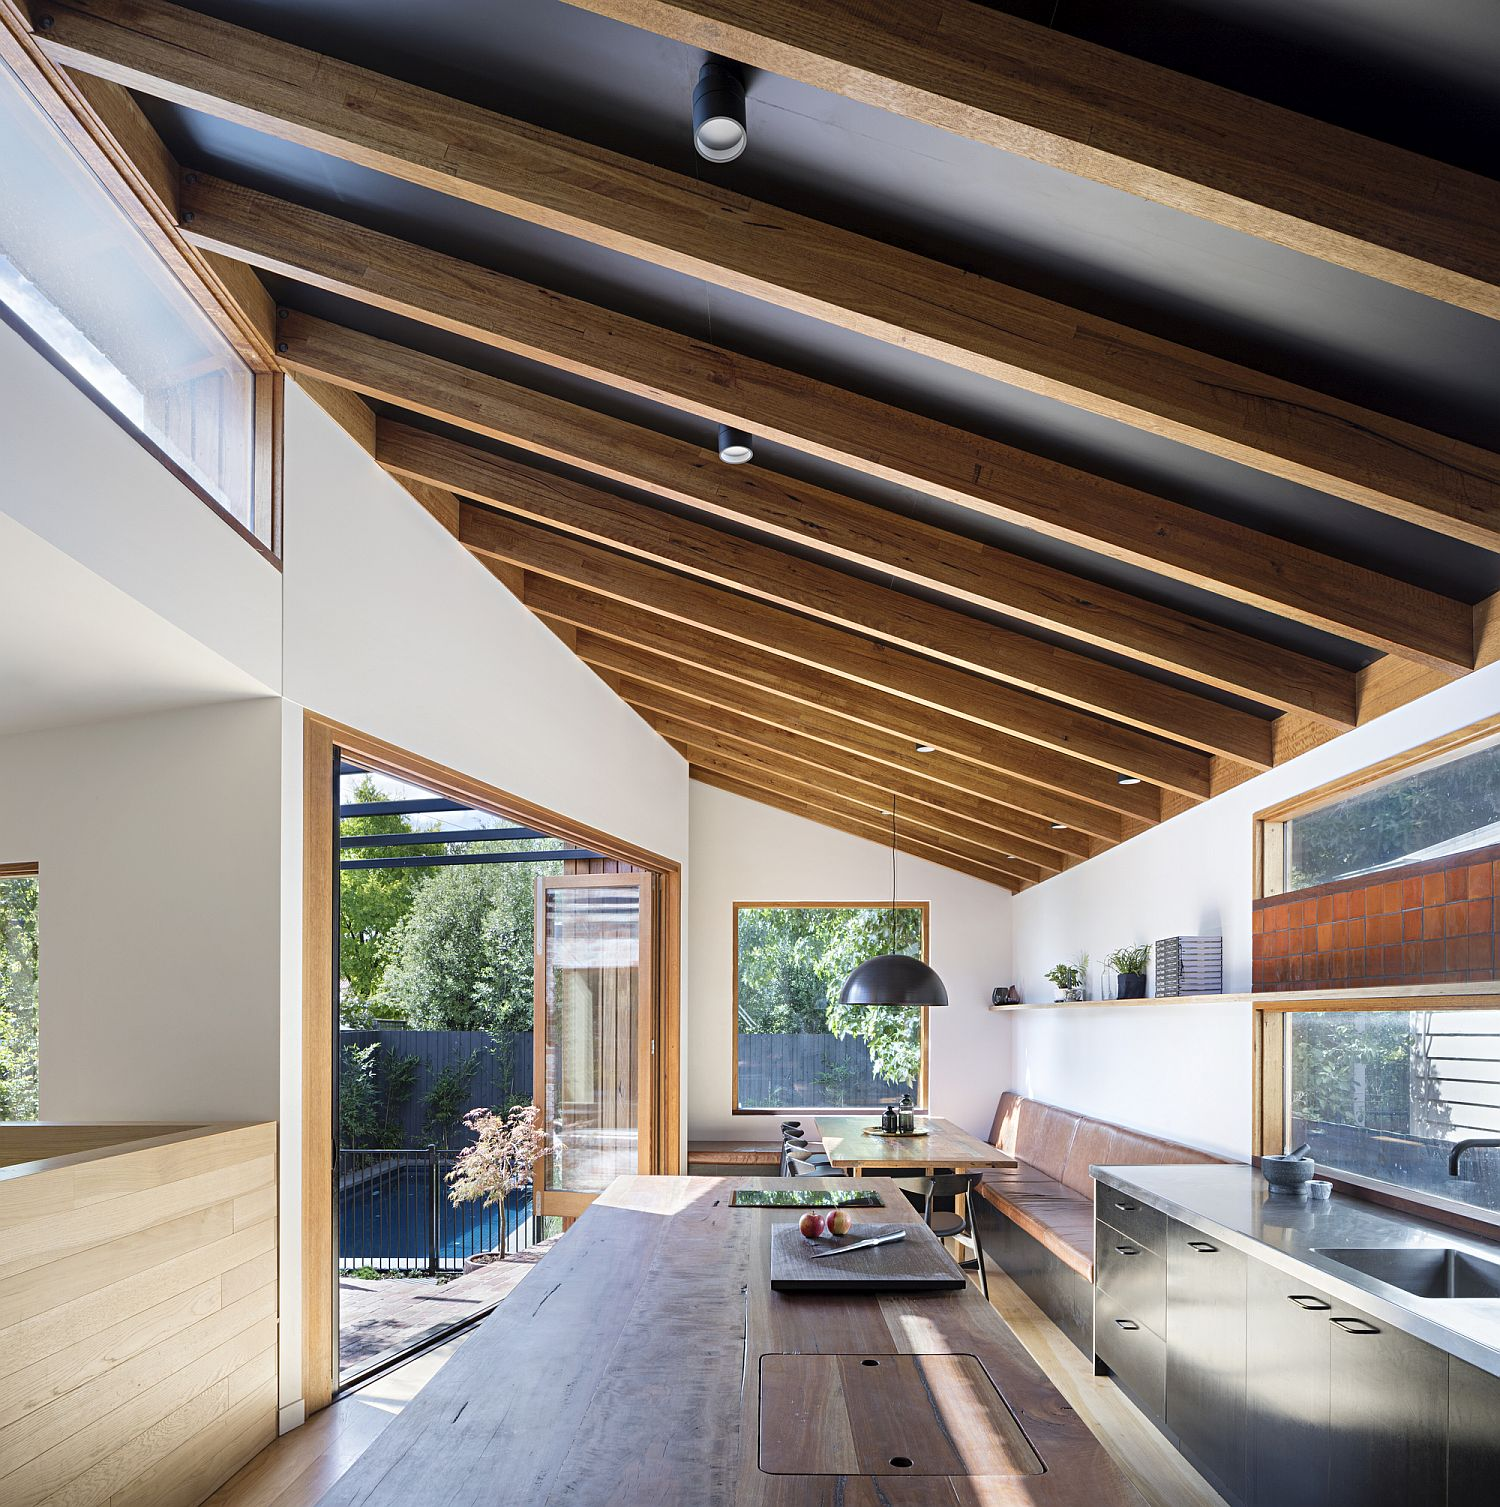 Timber ceiling beams give the interior a modern classic look